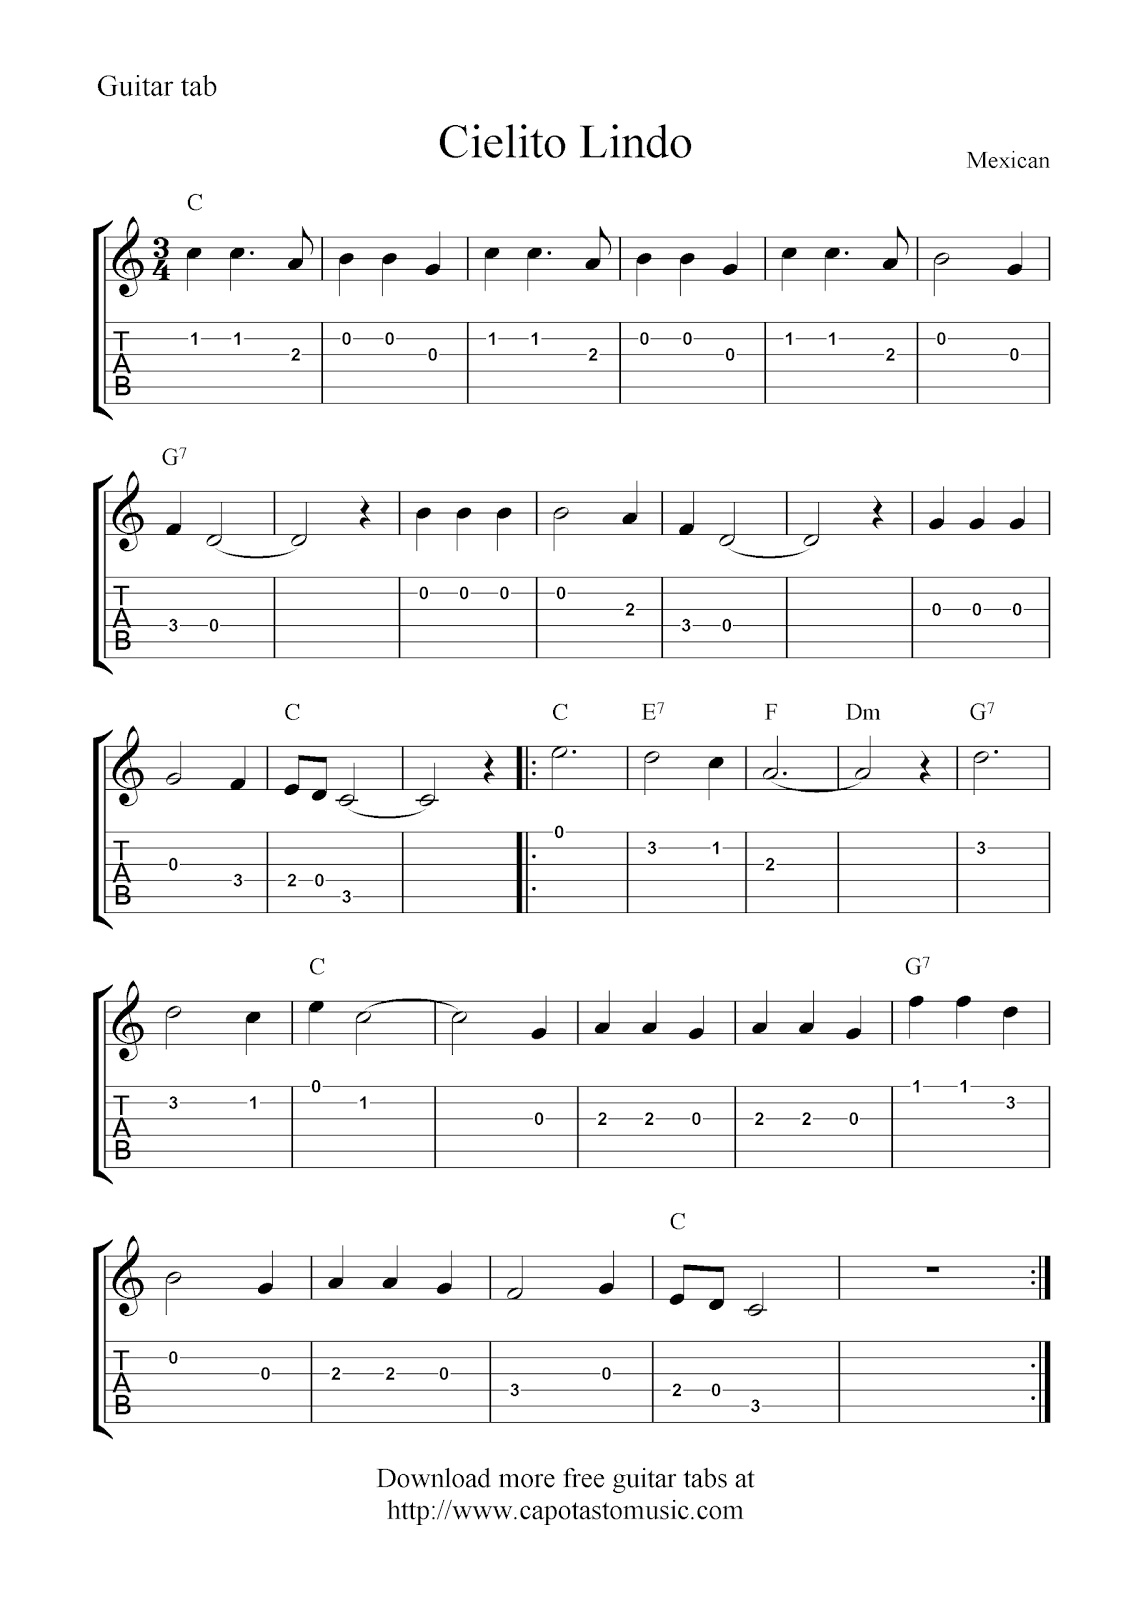 Free guitar tablature sheet music notes, Cielito Lindo